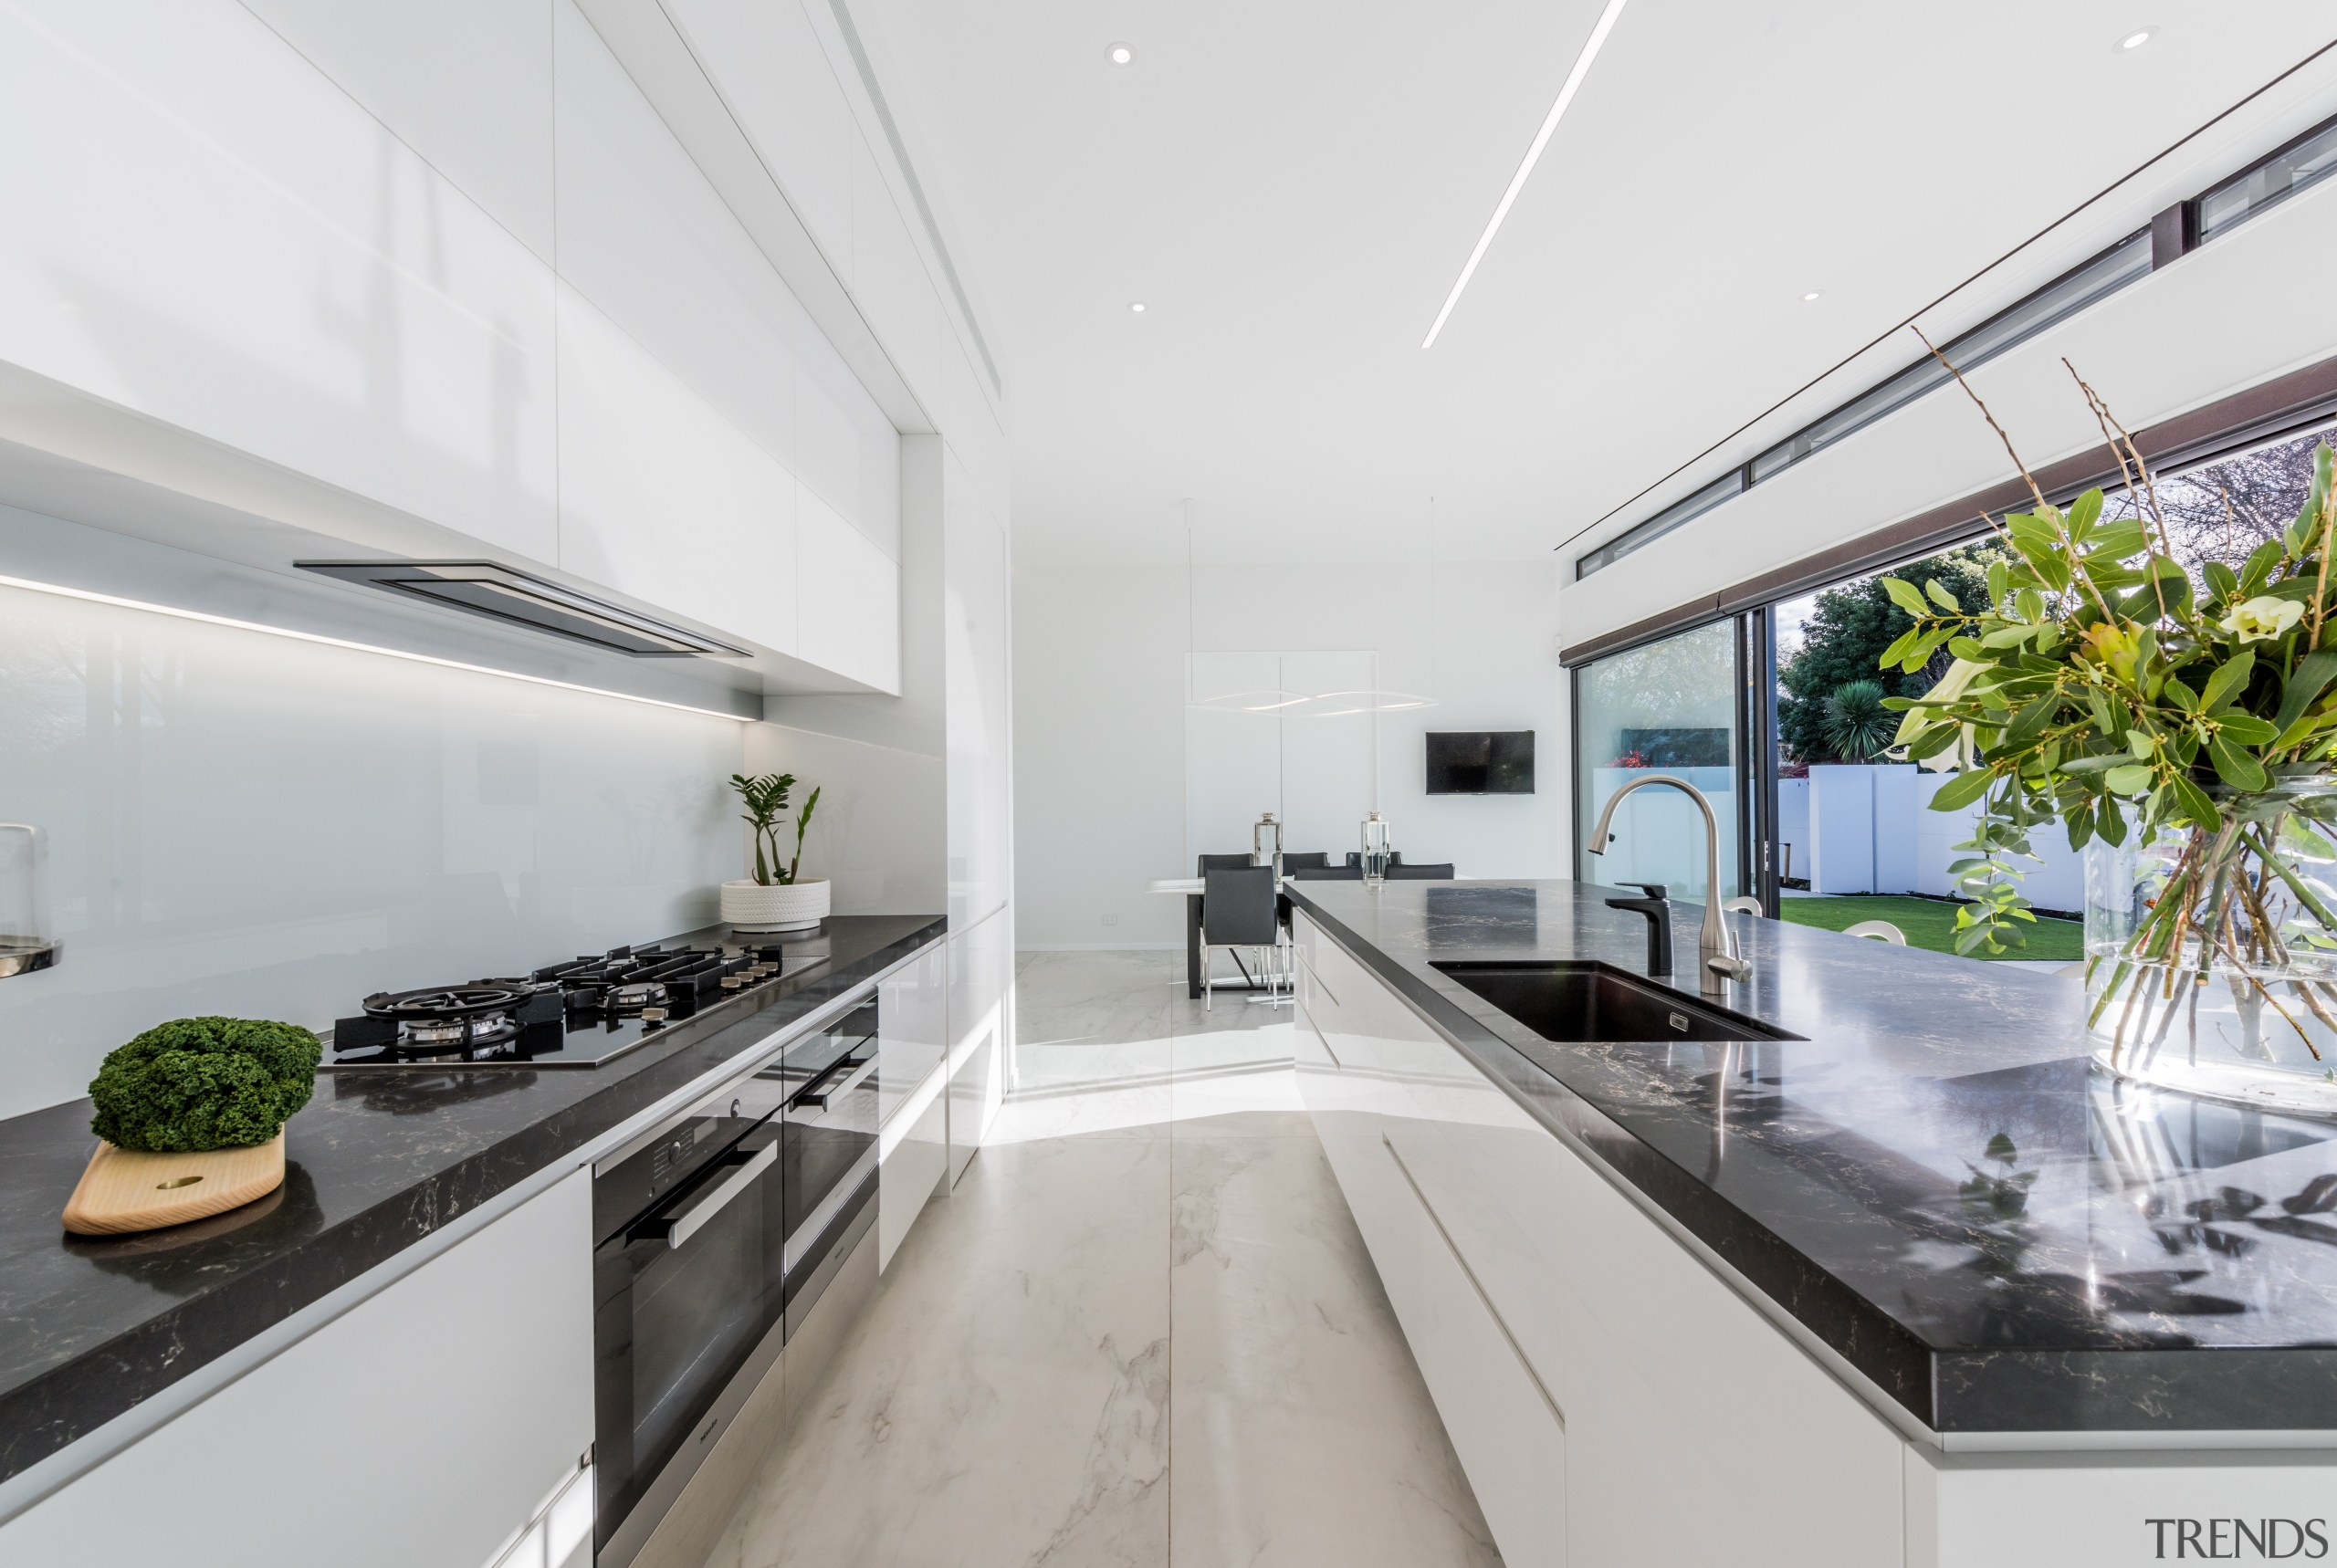 The long, clean lines of this kitchen match architecture, countertop, benchtop, Ceasarstone, kitchen, white cabinetry, Island, appliances, Emma Morris, Eterno Design